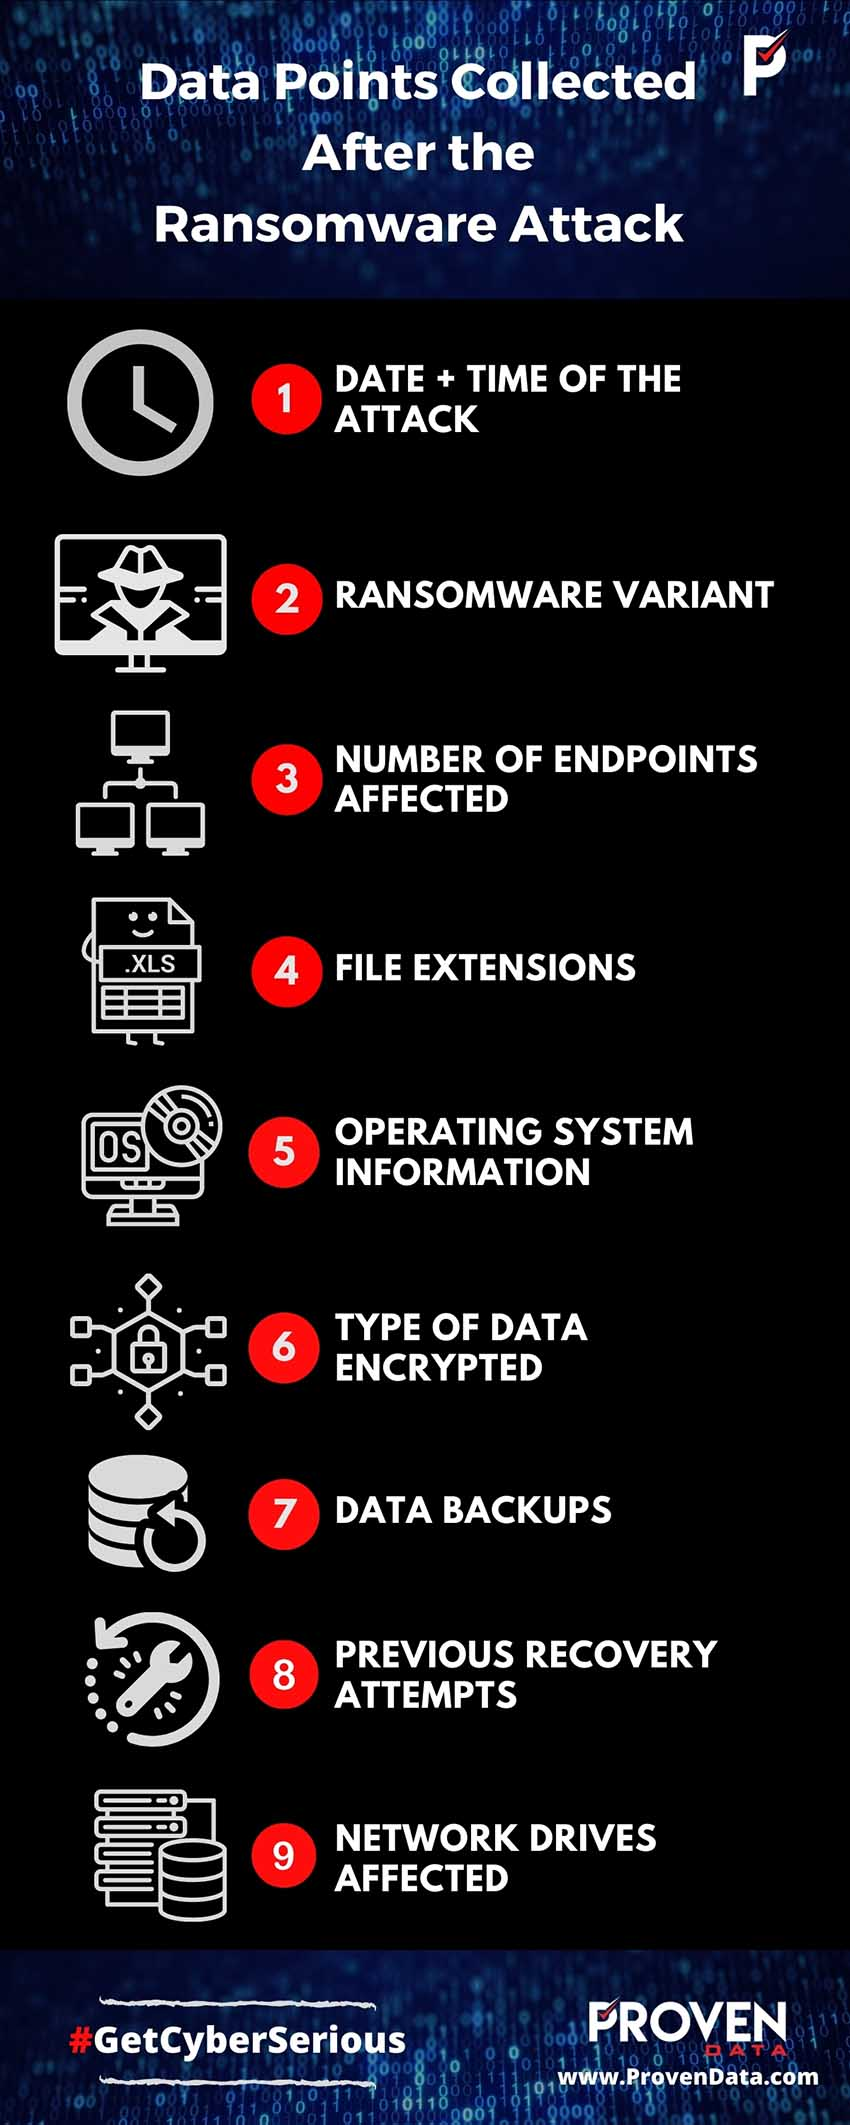 Data Points Collected After the Ransomware Attack